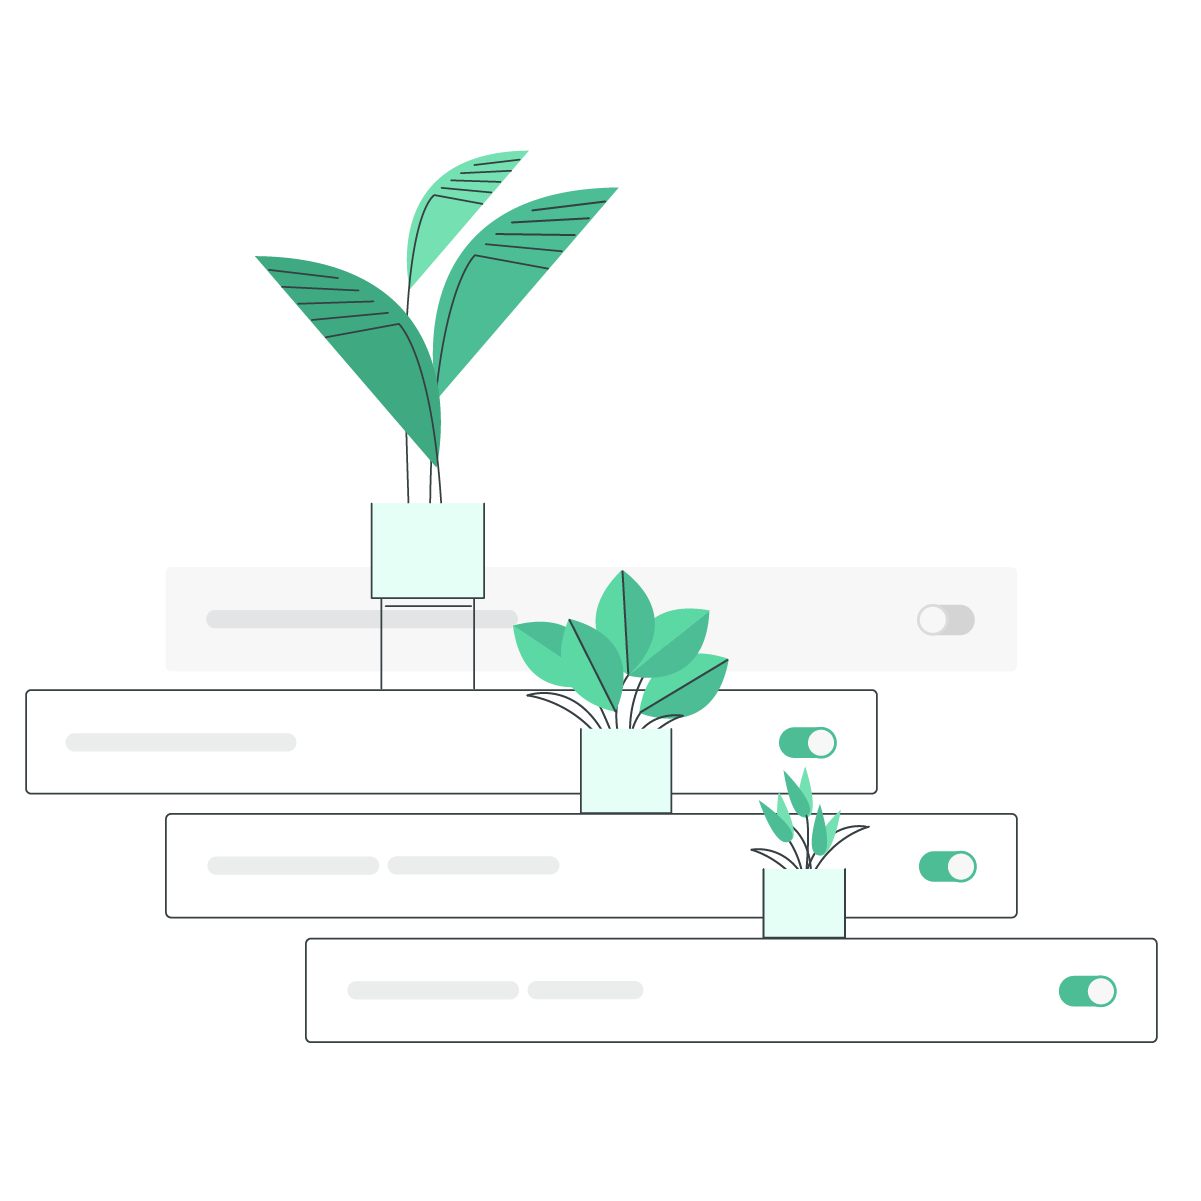 An illustration of a series a four potted plants, each progressively larger than the previous.